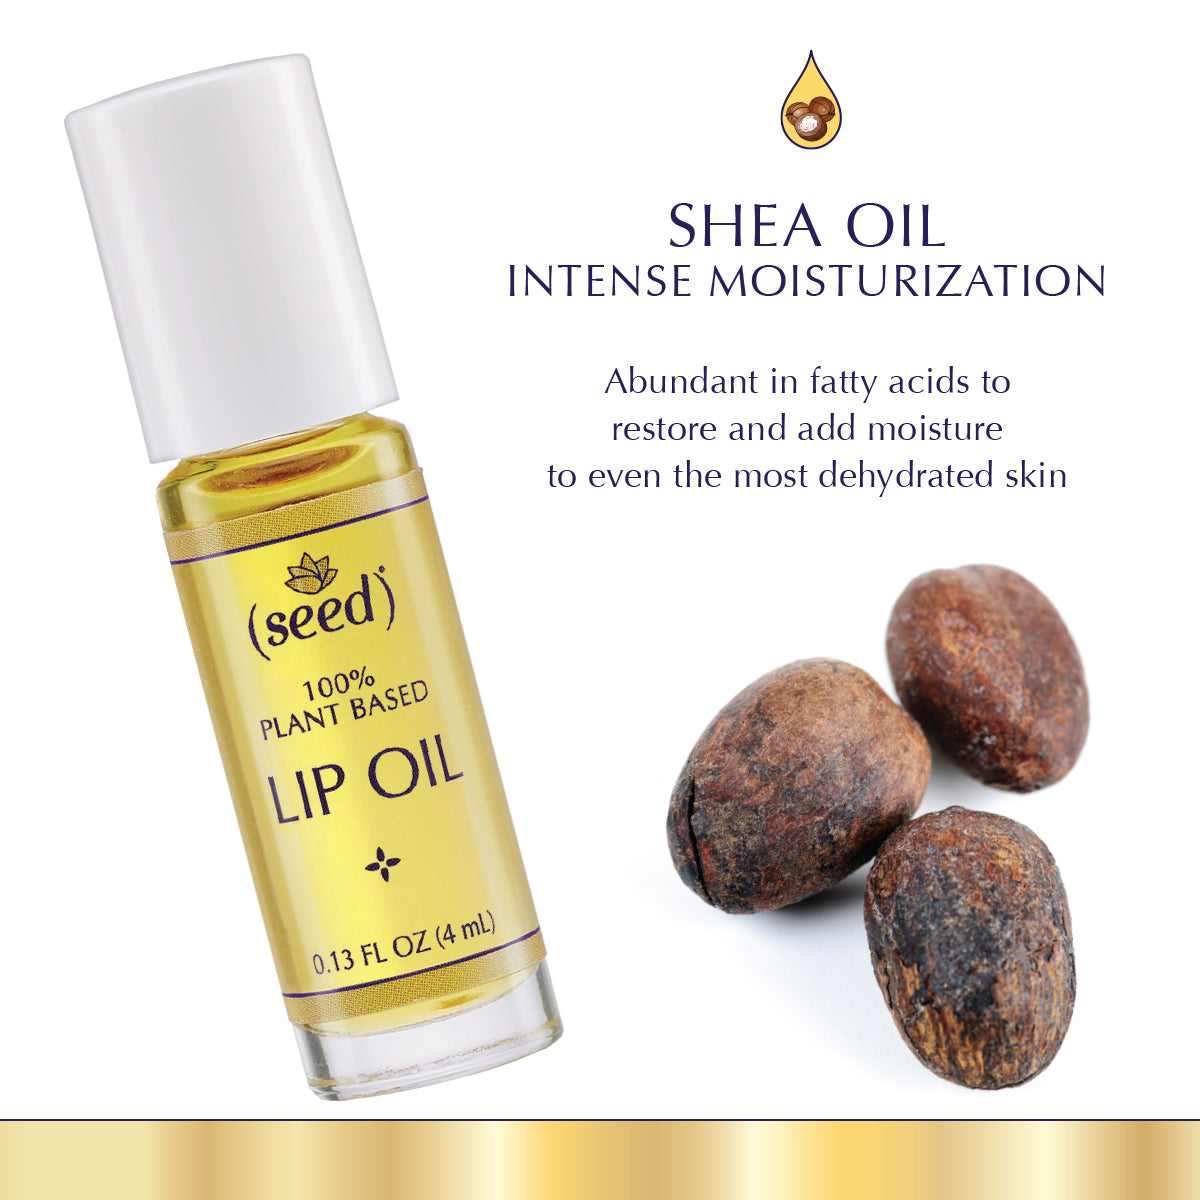 Seed Lip Oil is enriched with Shea Oil